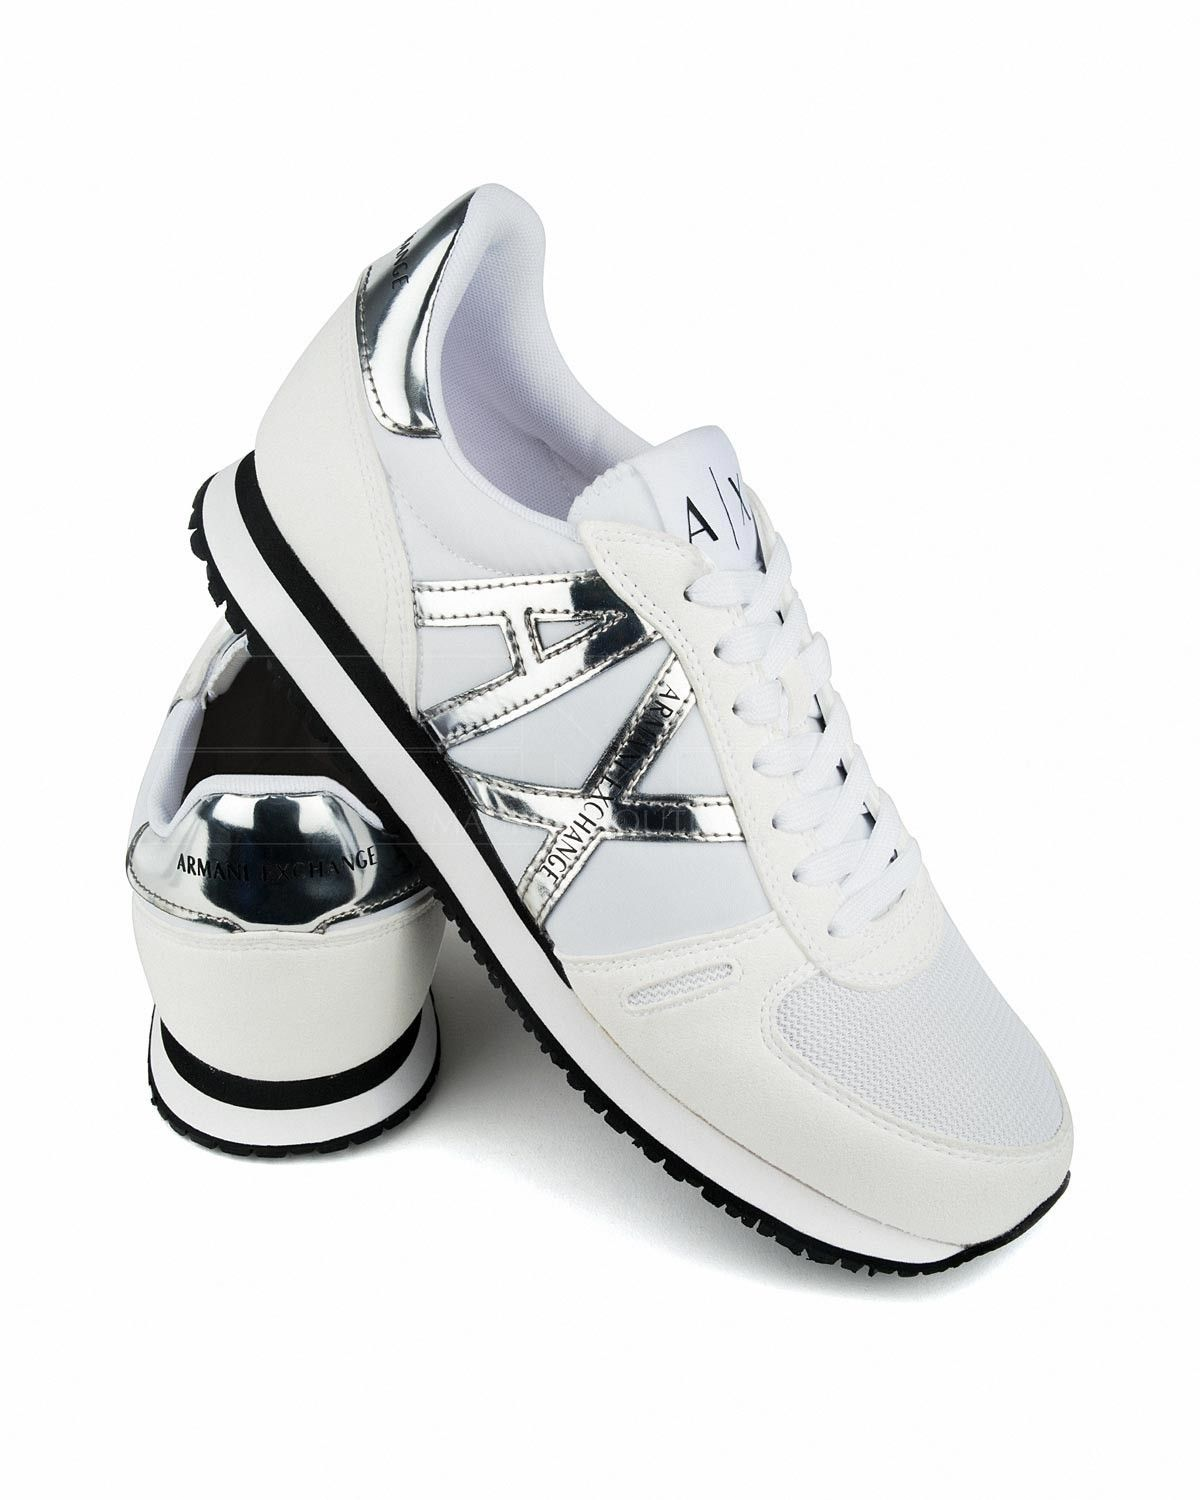 ARMANI EXCHANGE © Men s Shoes ✶ White  2111347b7